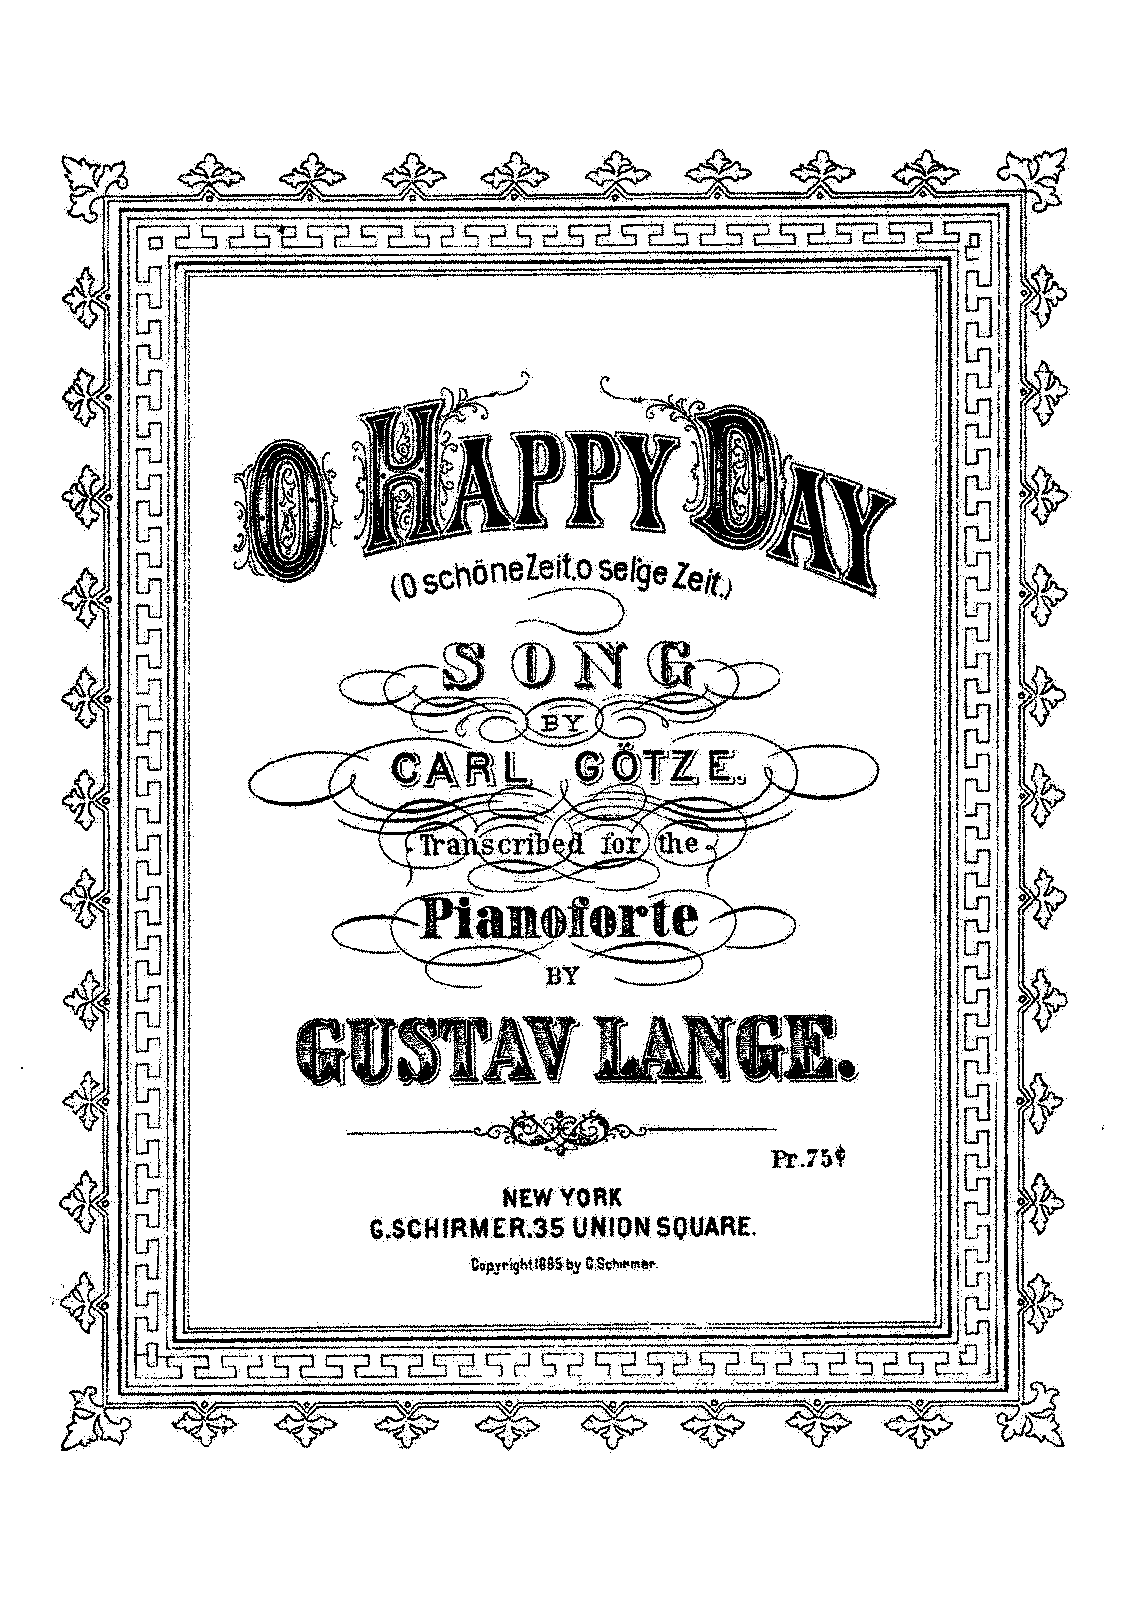 PMLP346643-Lange - 171-54 Fantasie-Transcription on Oh, Happy Day, Day so Dear by Carl Götz Op.171 No.54 - LOC.pdf